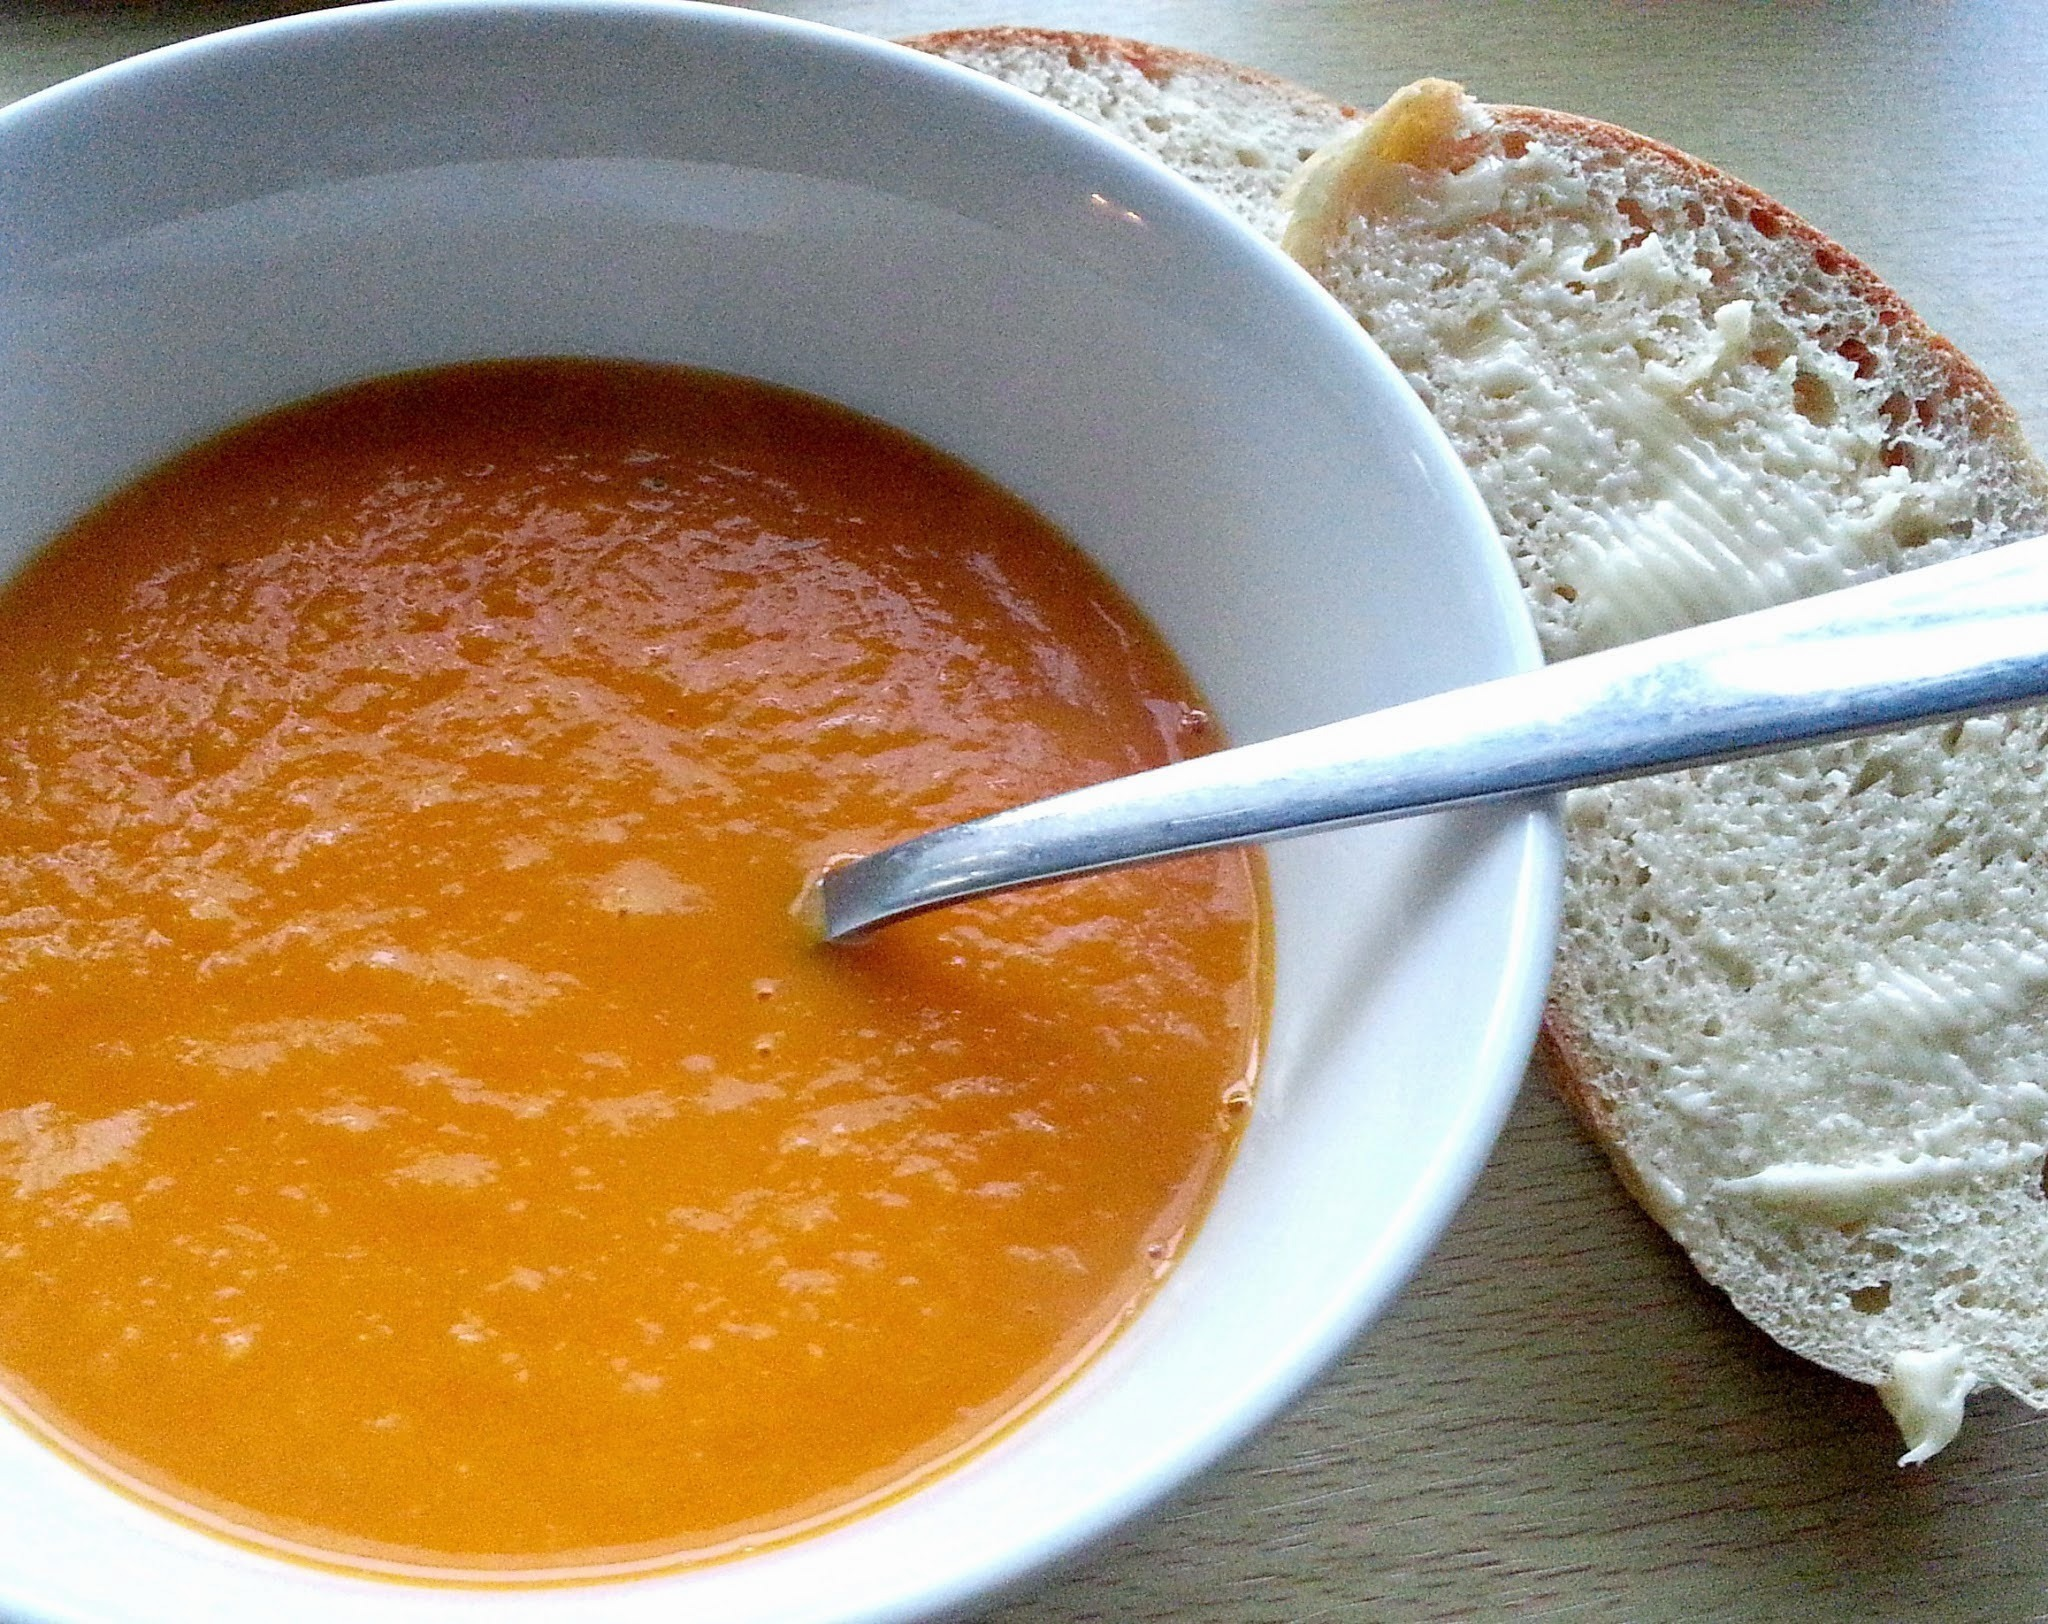 Delicious roasted vegetable soup